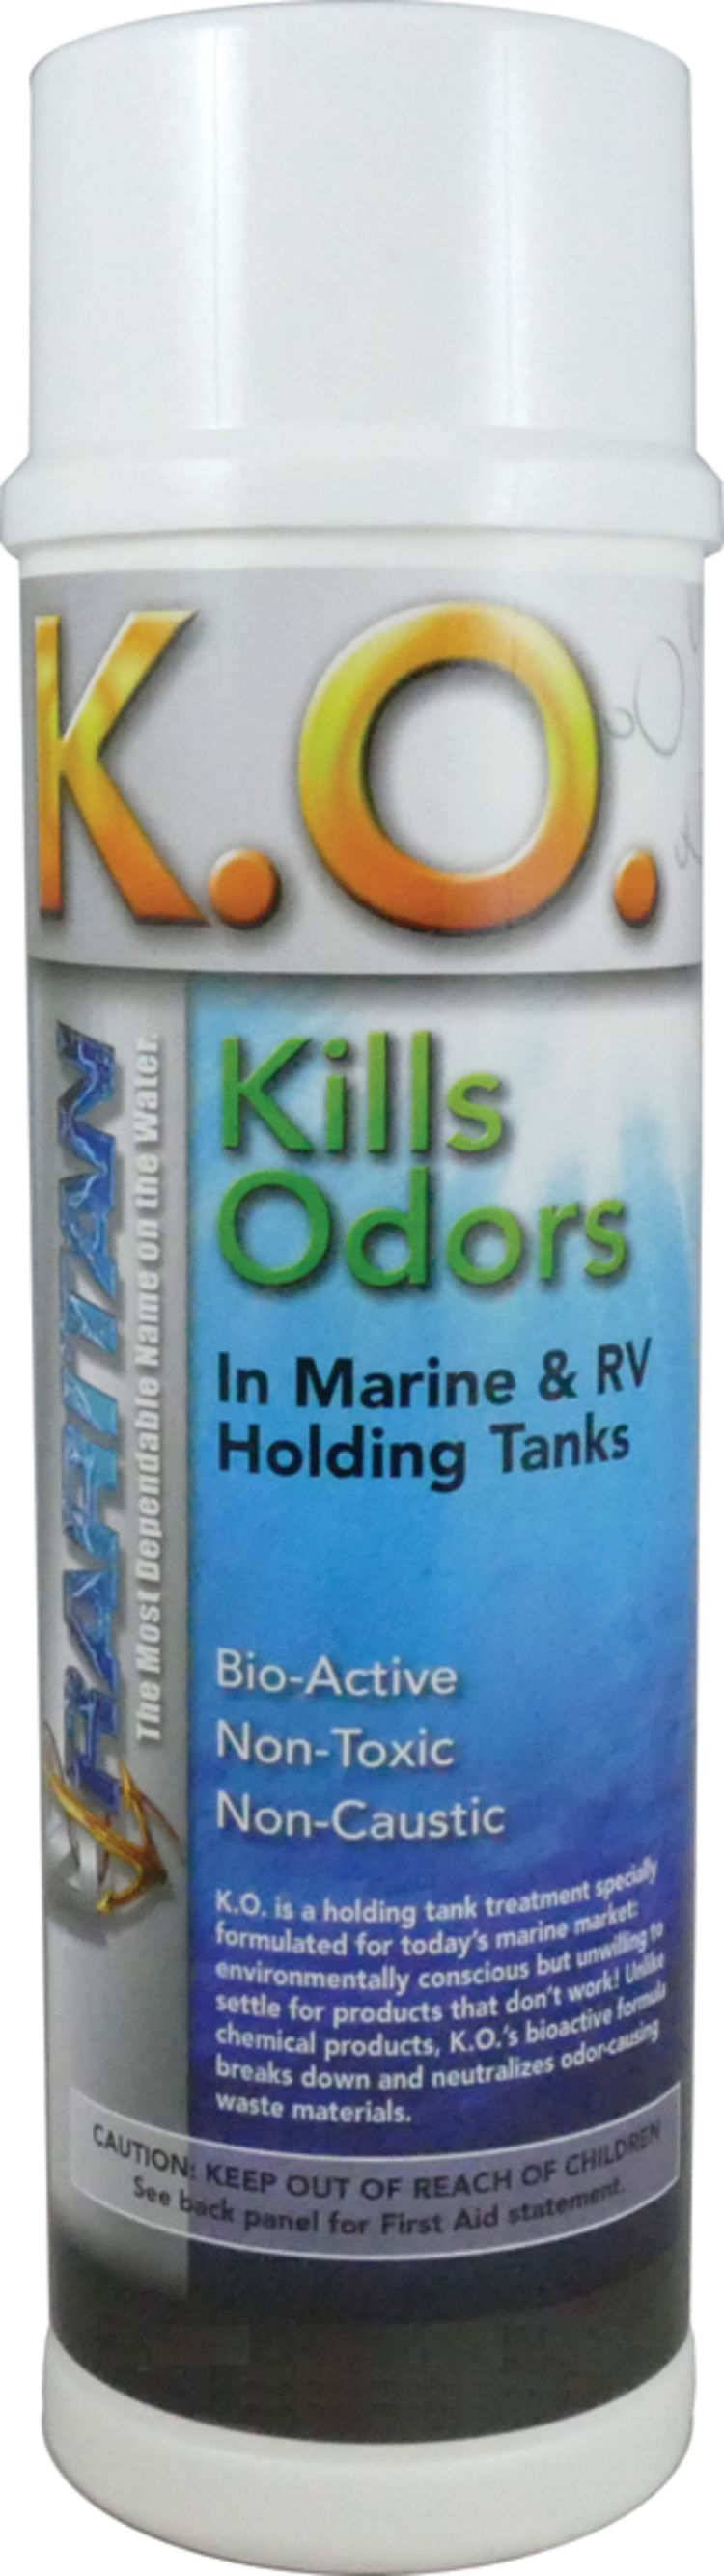 Kills Odor Holding Tank Treatment from Raritan